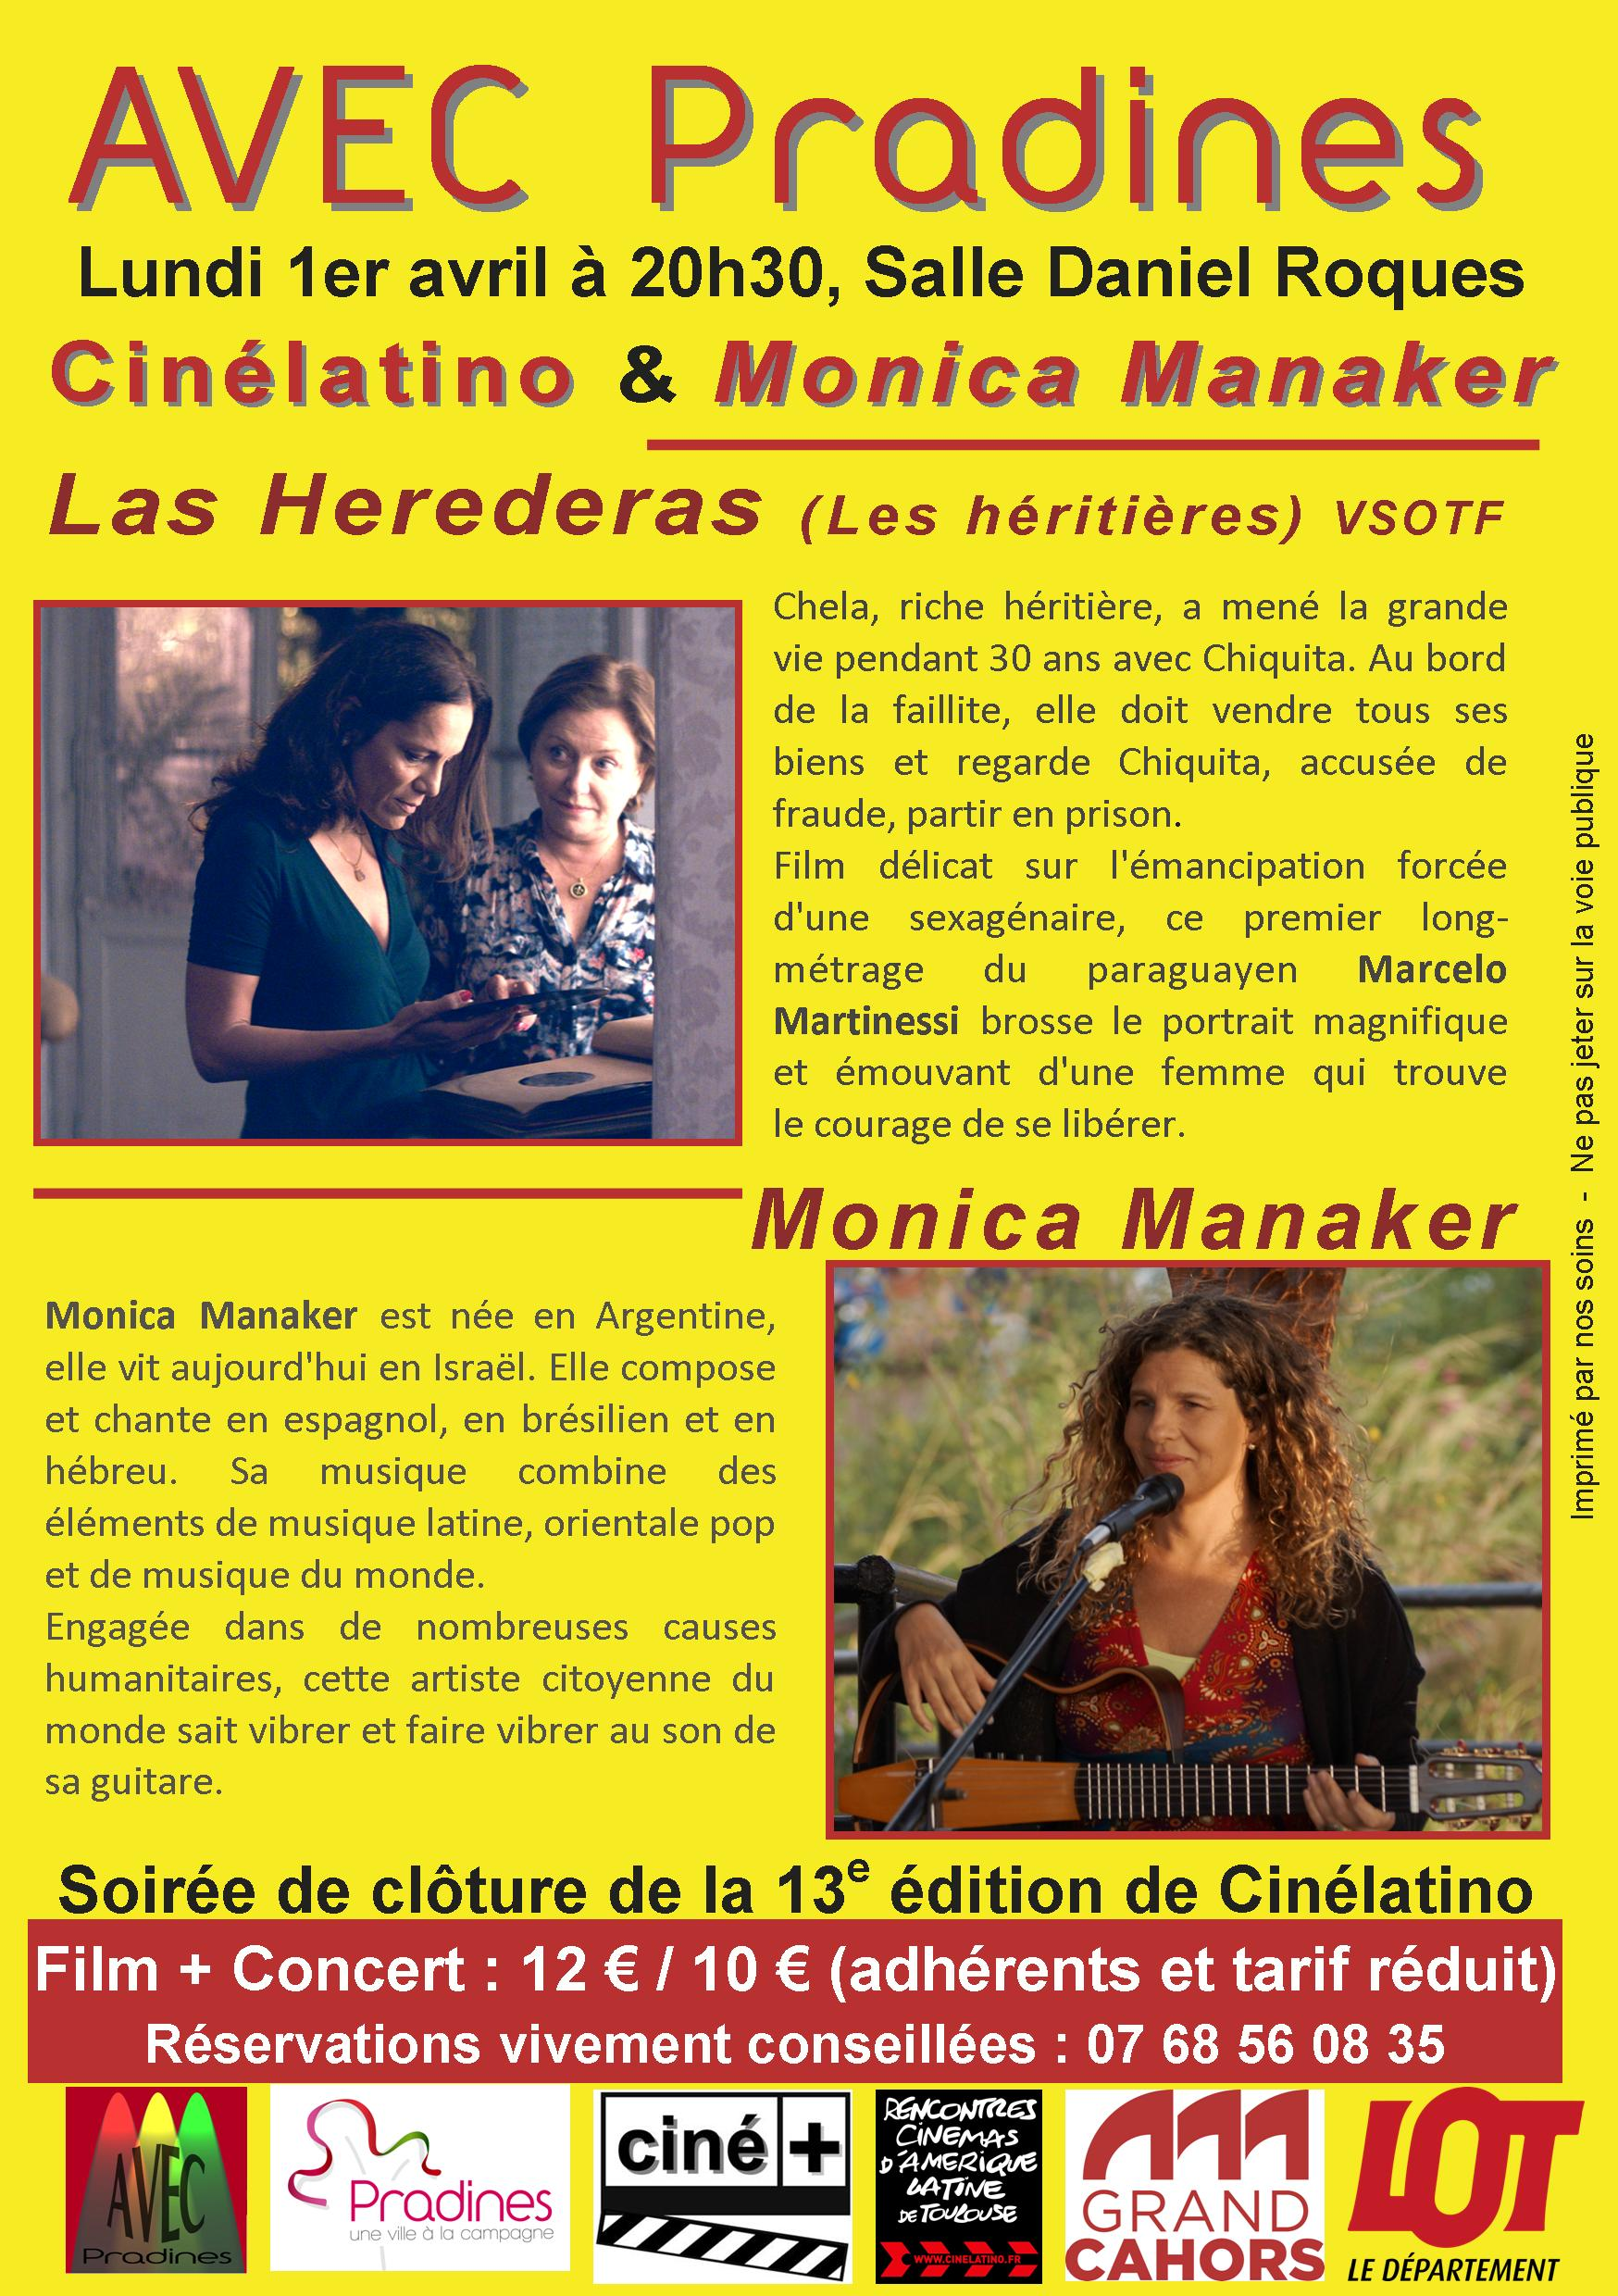 19 04 01 Cinelatino x 1 flyer